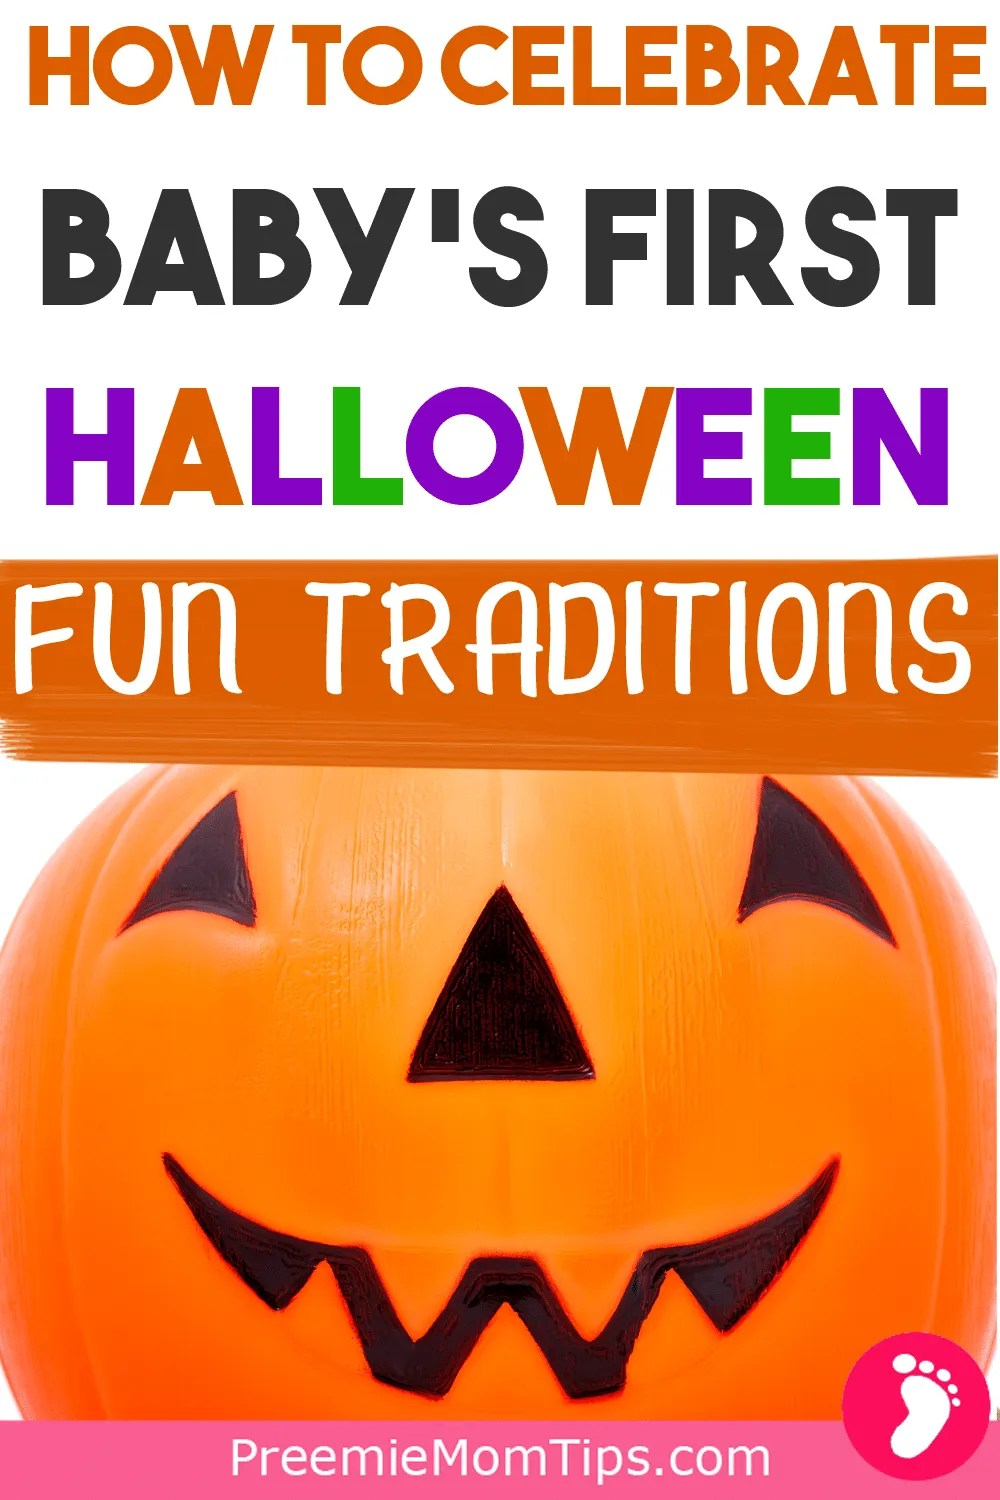 Don't miss out on celebrating your baby's first Halloween! From adorable costumes to my favorite crafts, here are my top 10 ways of enjoying your baby's first Halloween